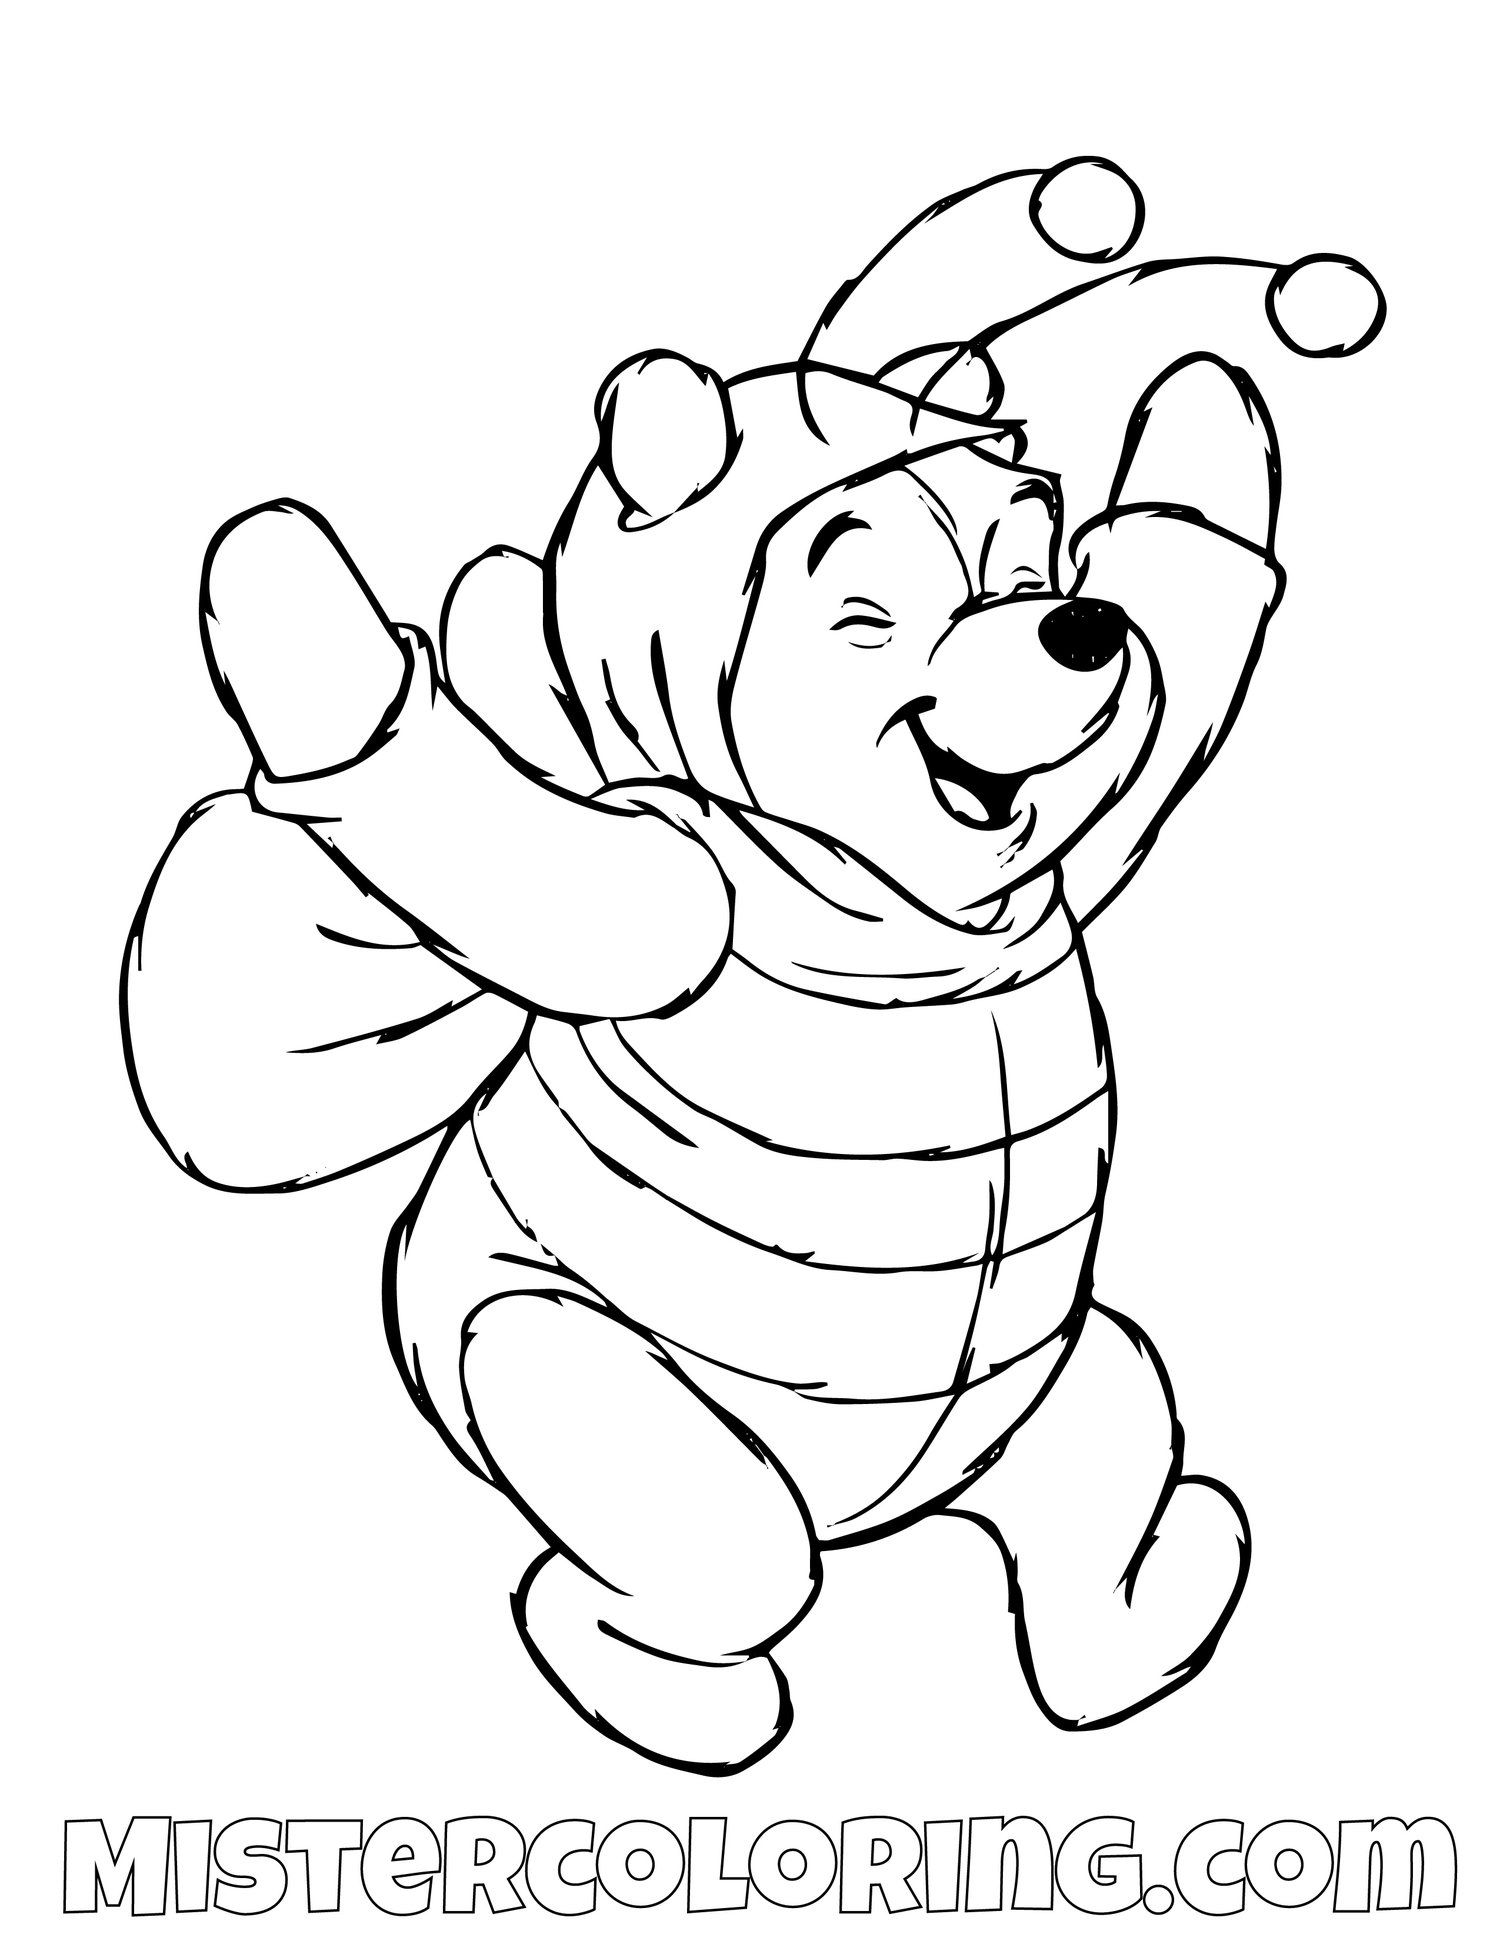 Winnie The Pooh Coloring Pages For Kids Mister Coloring In 2020 Halloween Coloring Halloween Coloring Pages Halloween Coloring Book